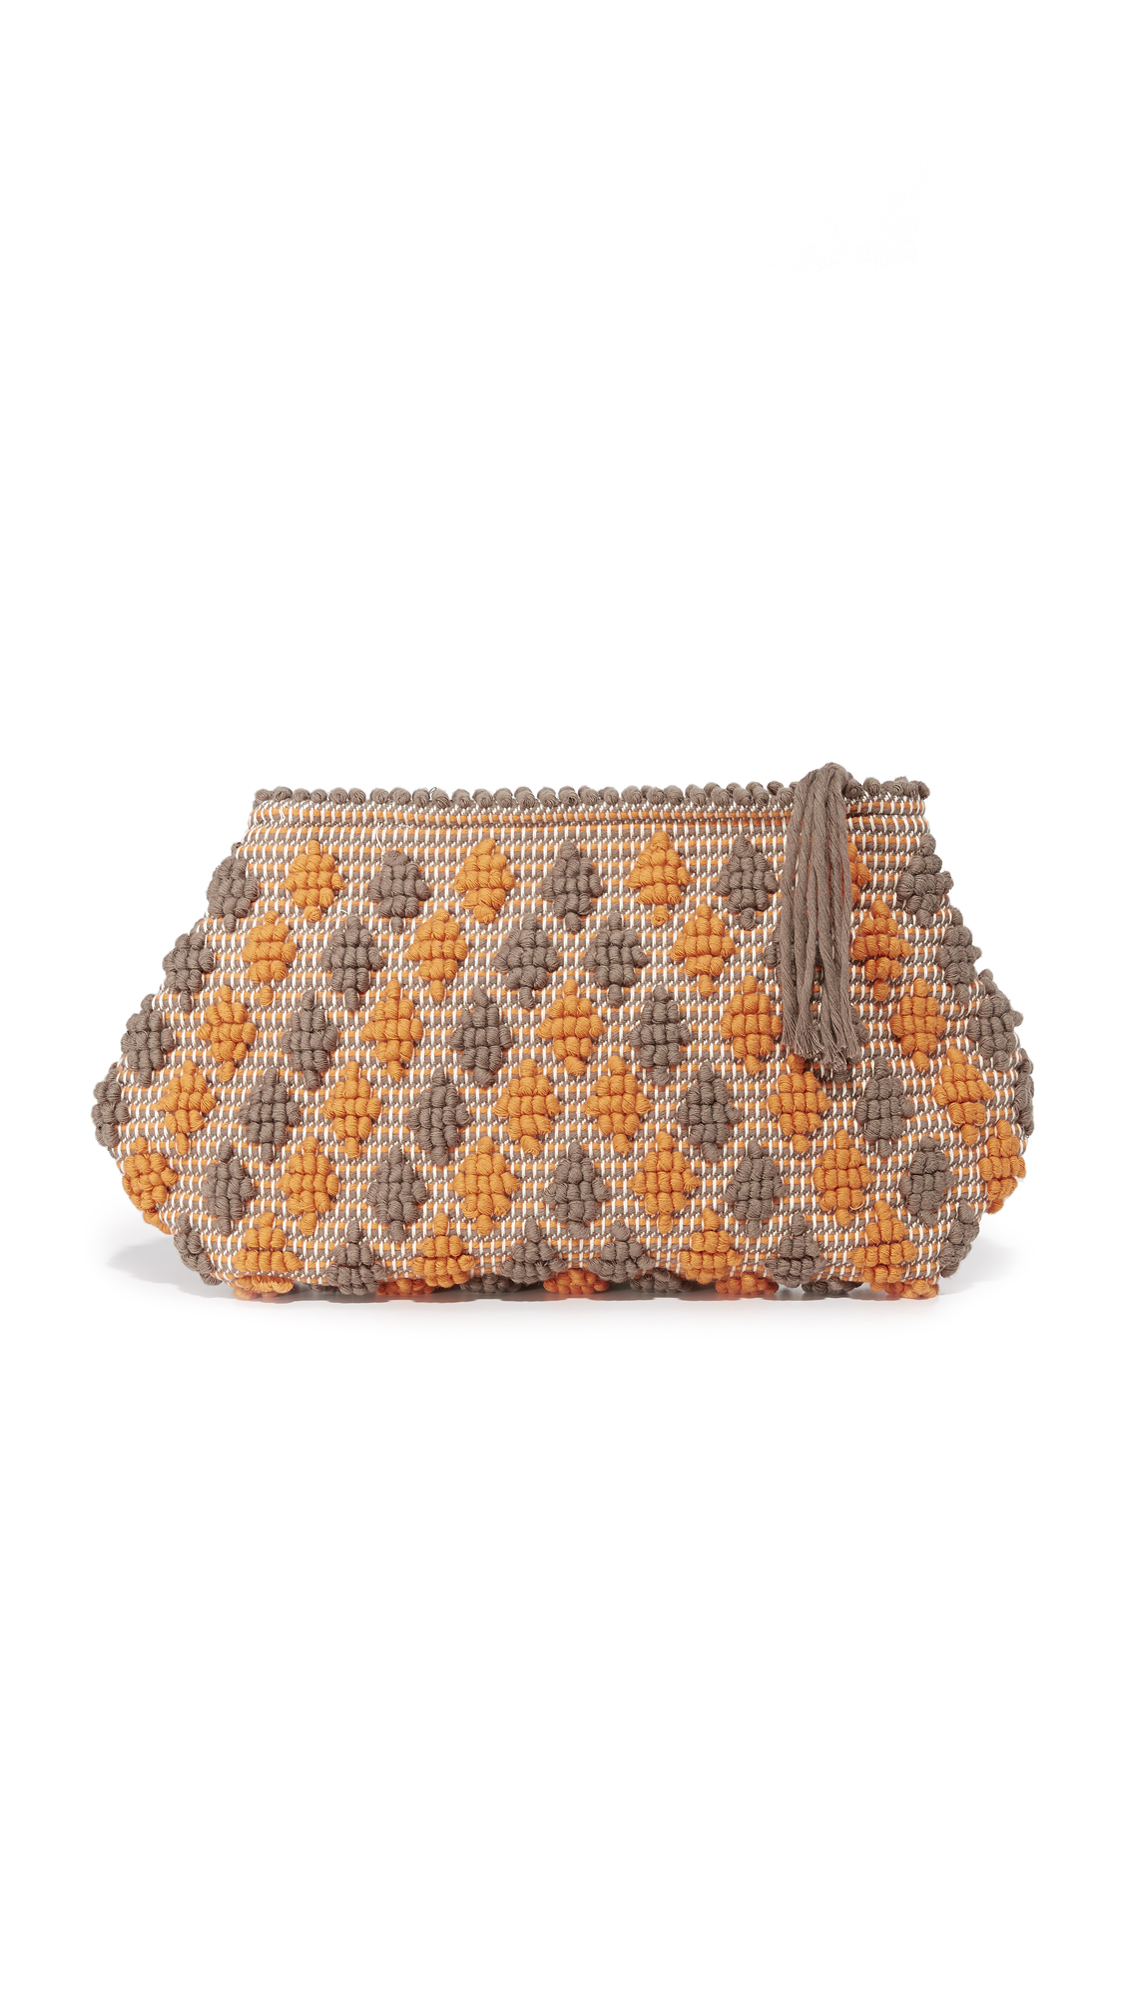 Antonello Piatta Rombetti Clutch - Dark Taupe/Dark Orange